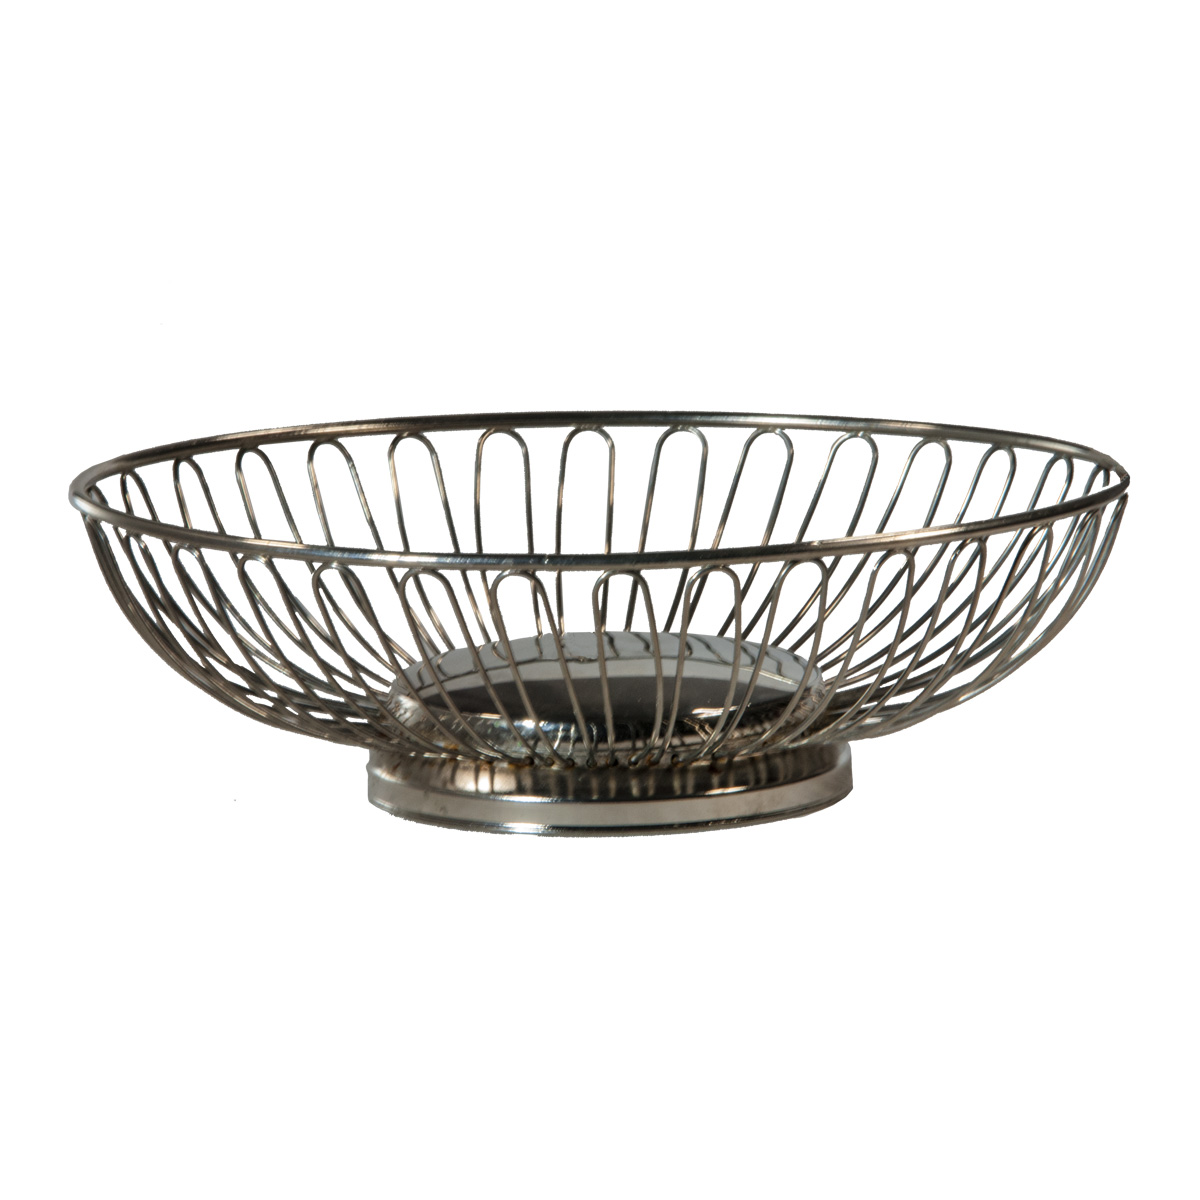 Silver Bread Basket - Celebrations! Party Rentals